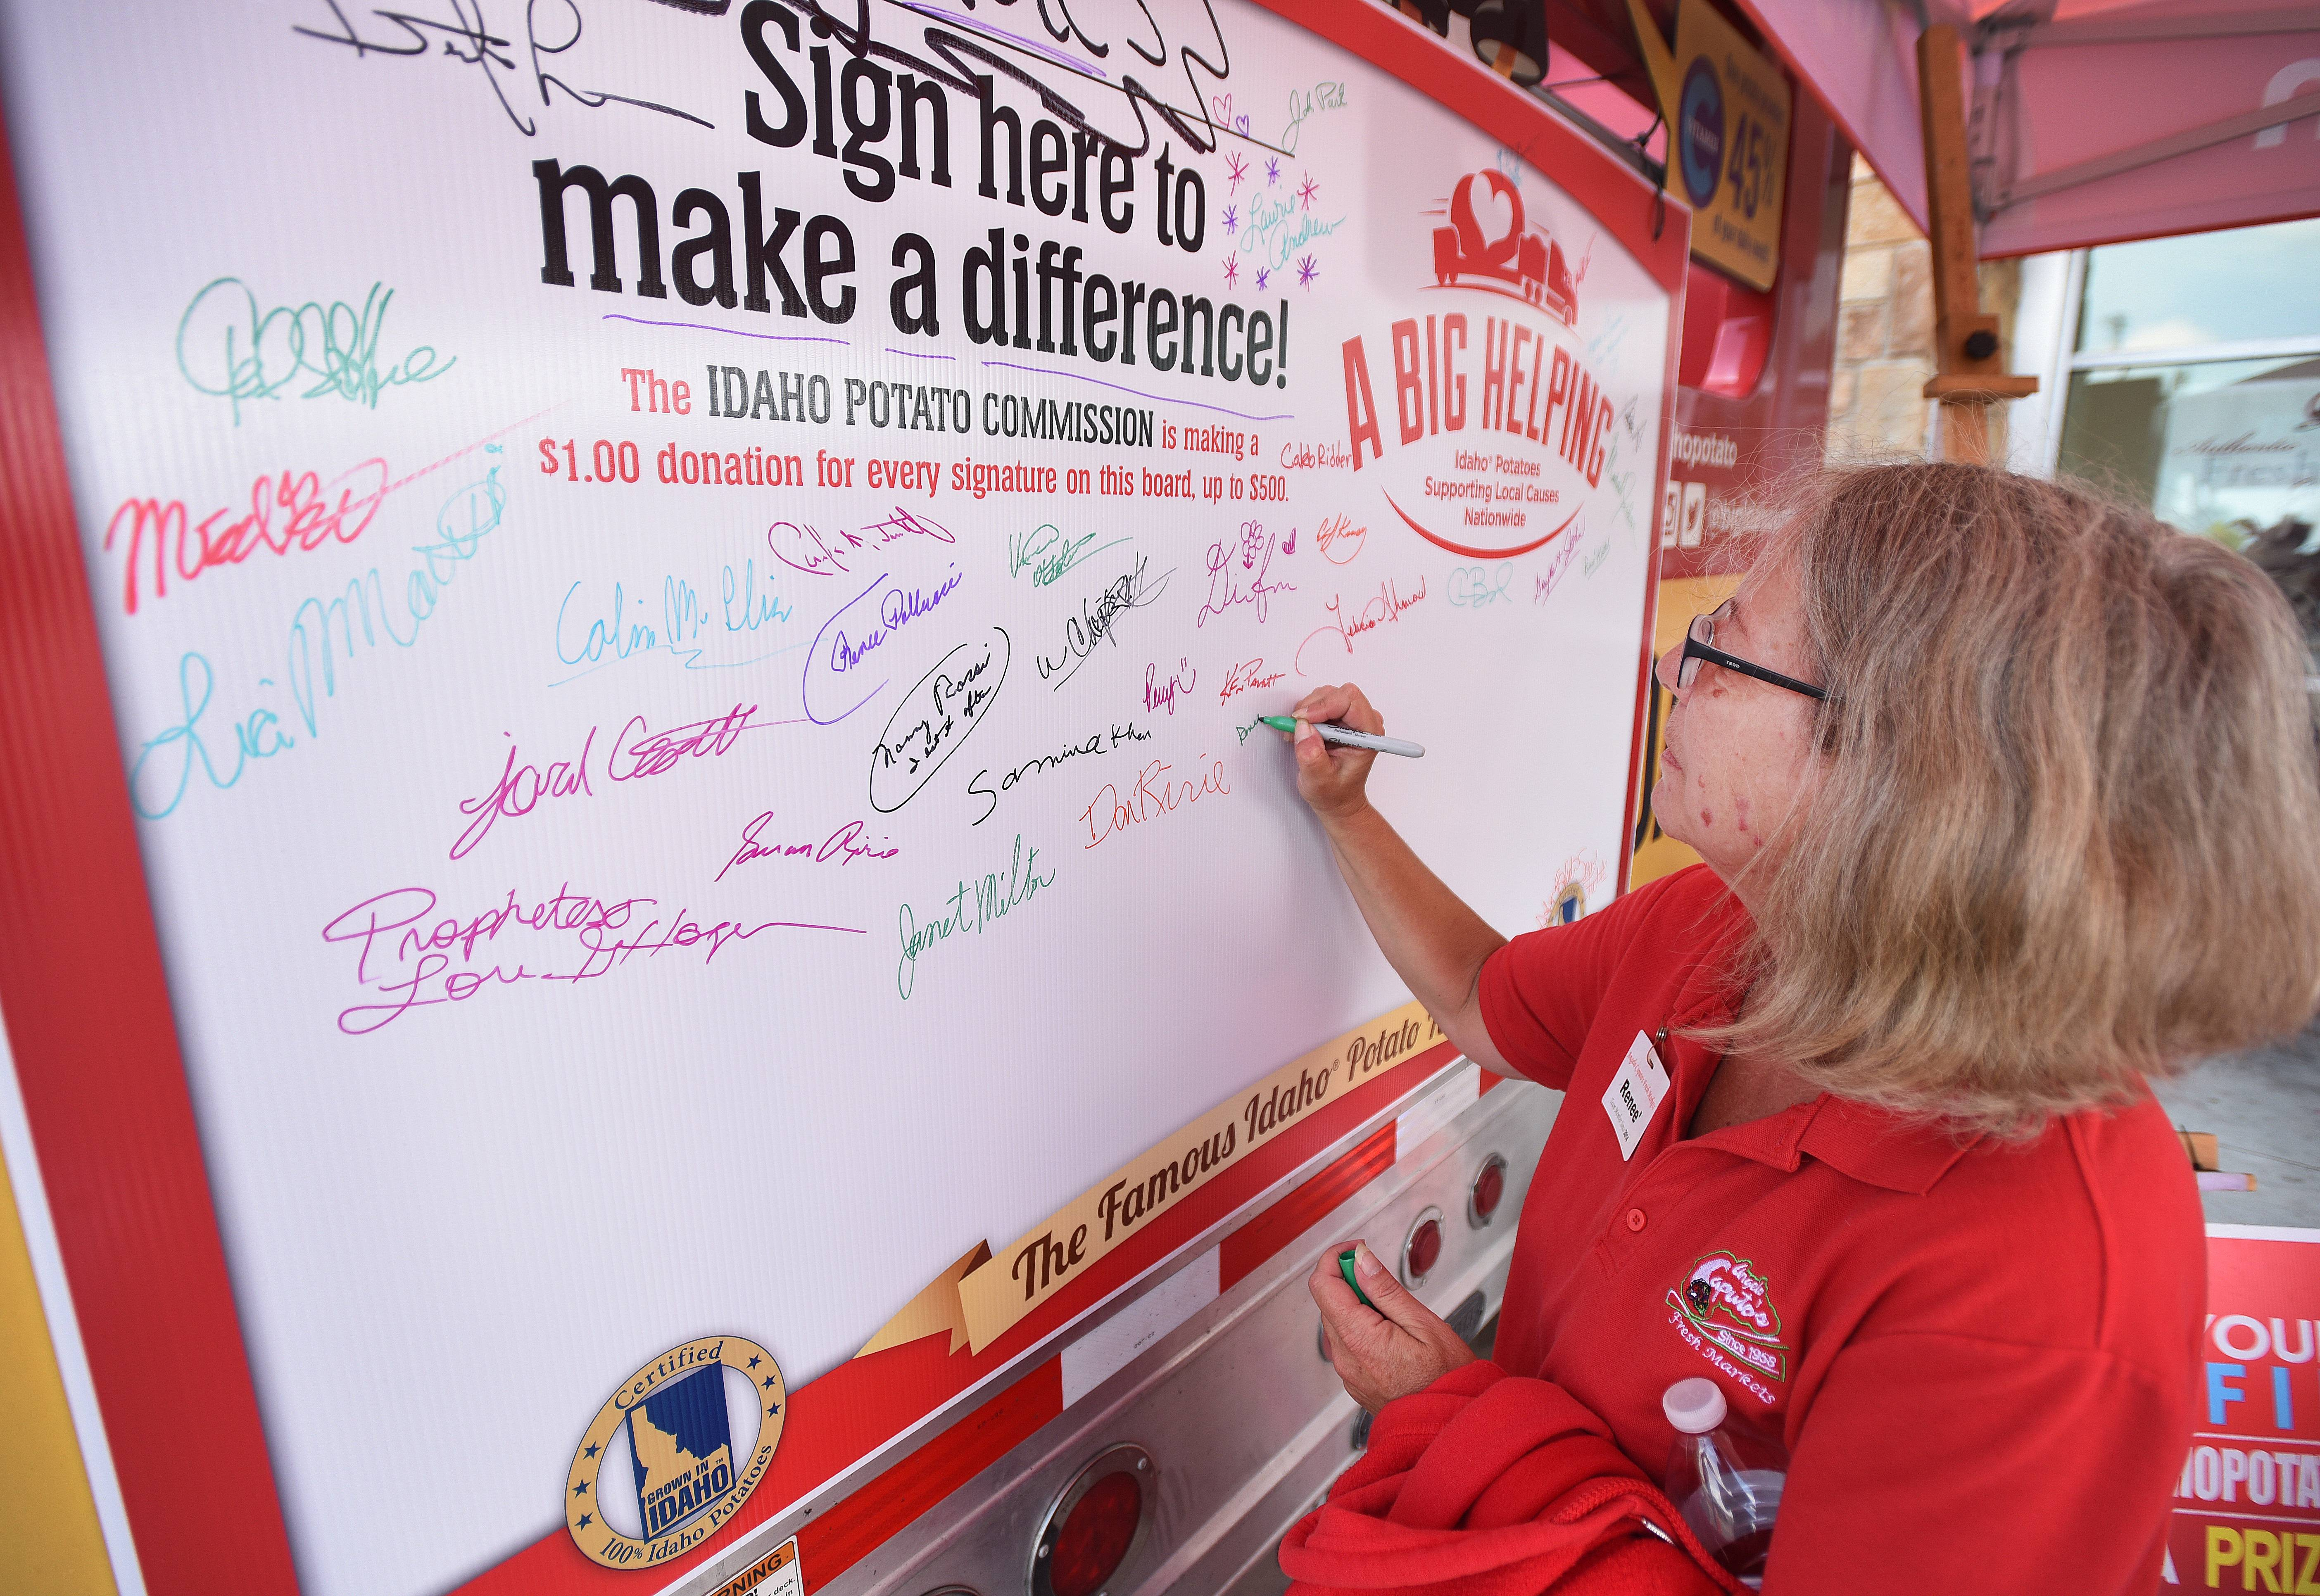 Renee Kostel of West Chicago signs on near the potato truck. For every signature, the Idaho Potato Commission pledged to donate a $1 to the St. Jude Children's Research Hospital.